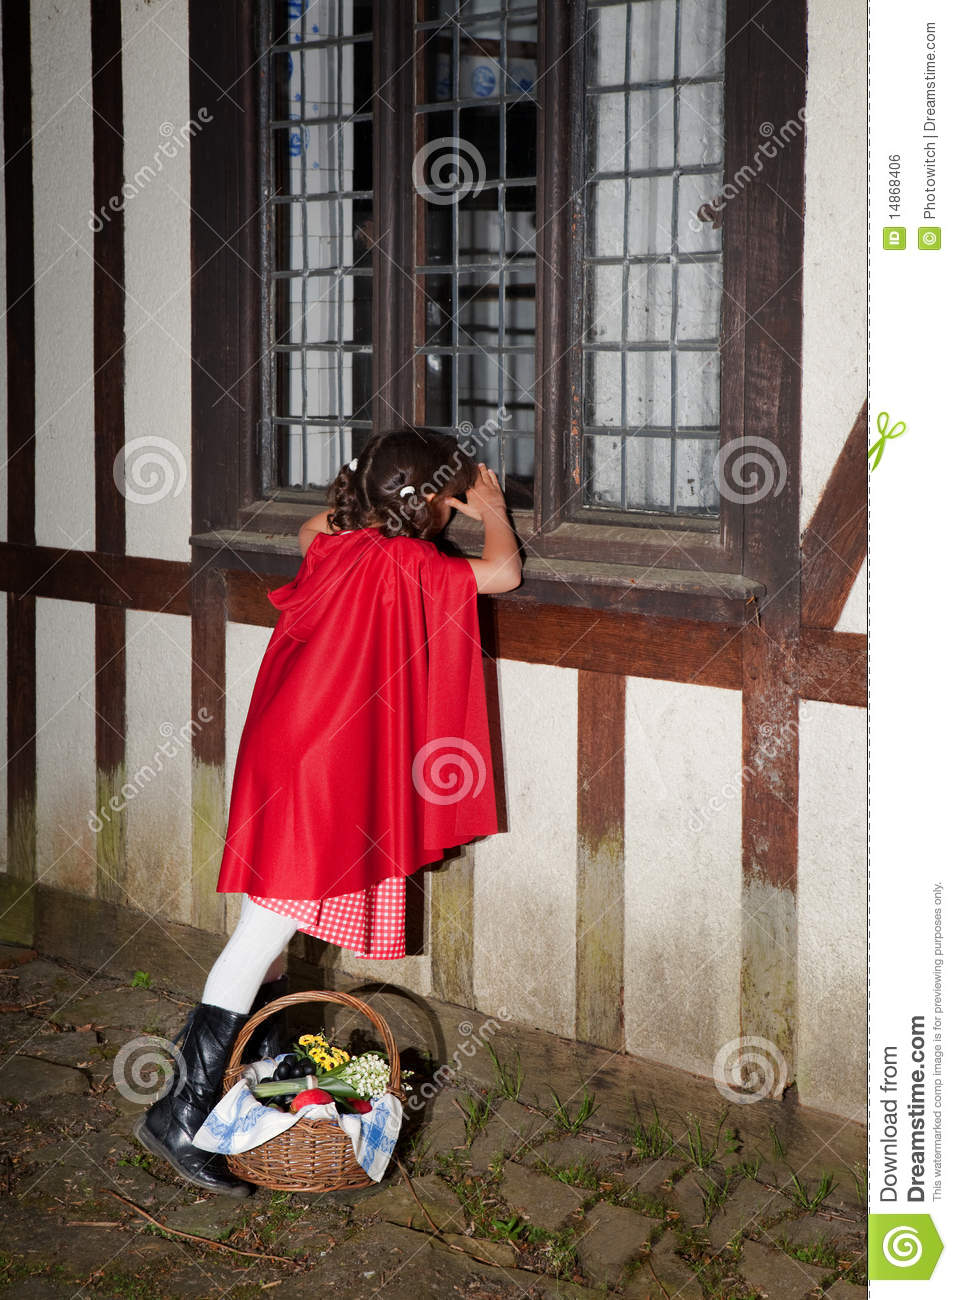 Little red riding hood looking through window